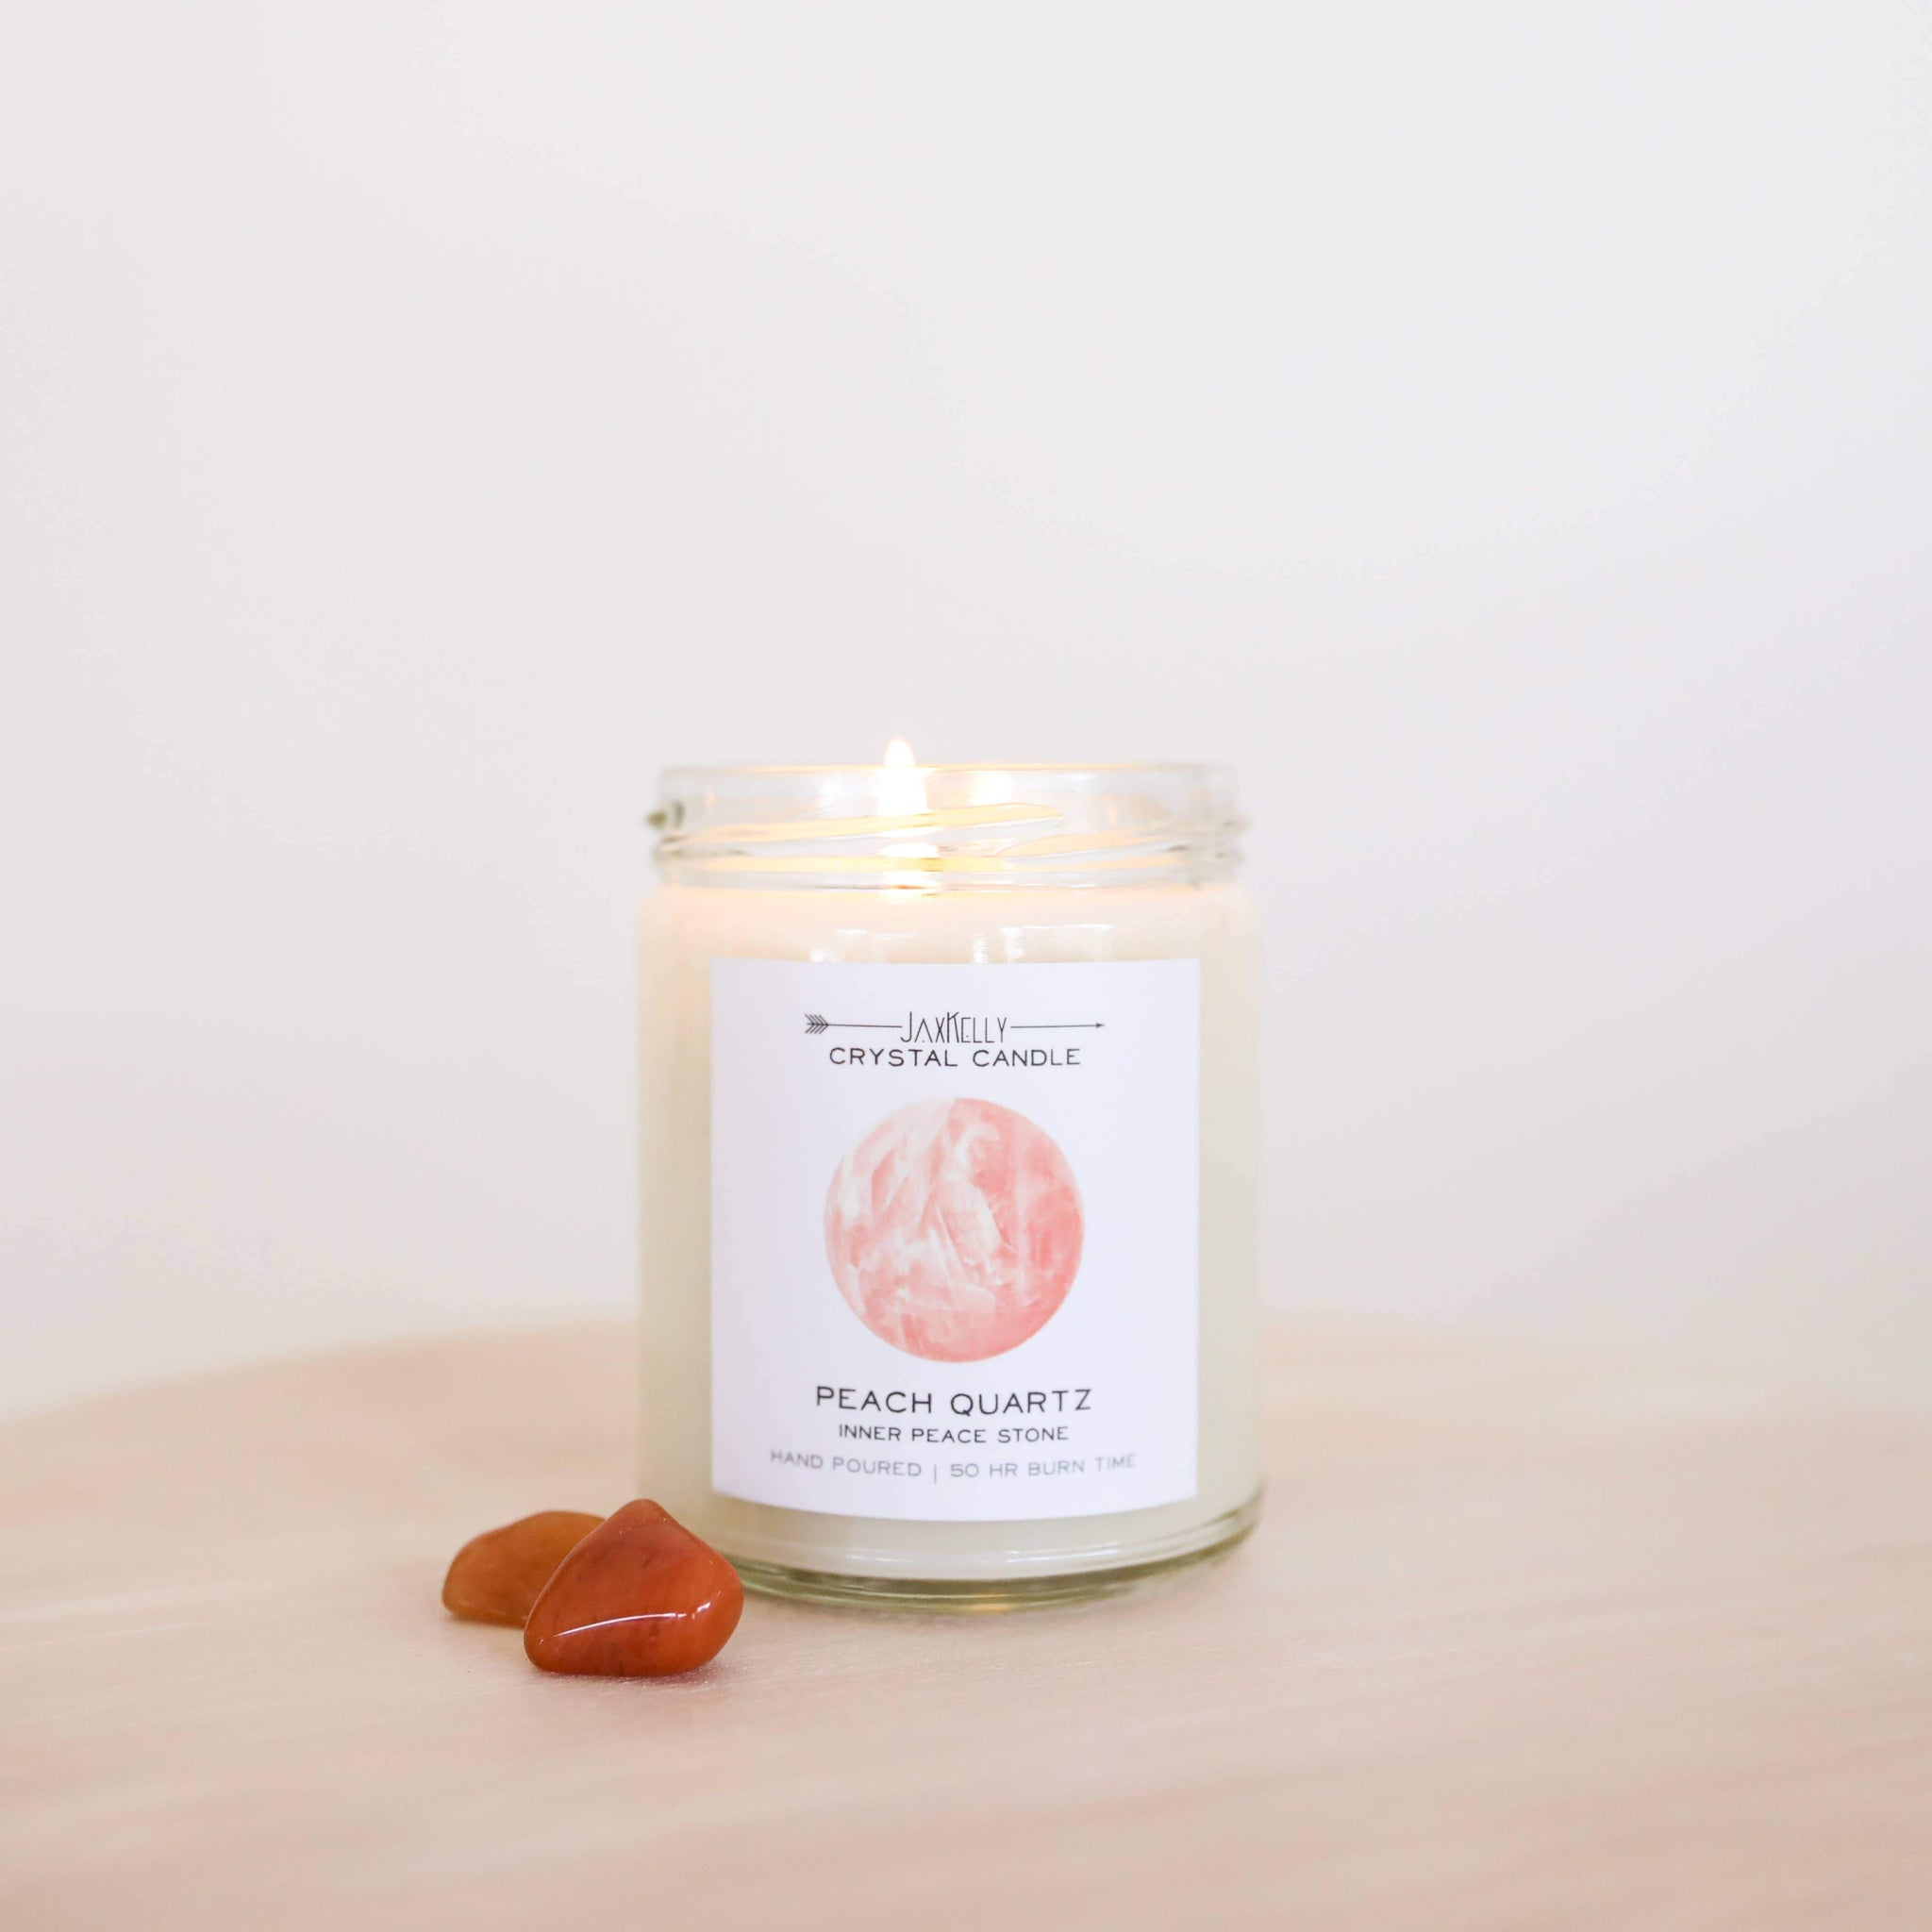 Peach Quartz Crystal Candle - Inner Peace - Rise and Redemption